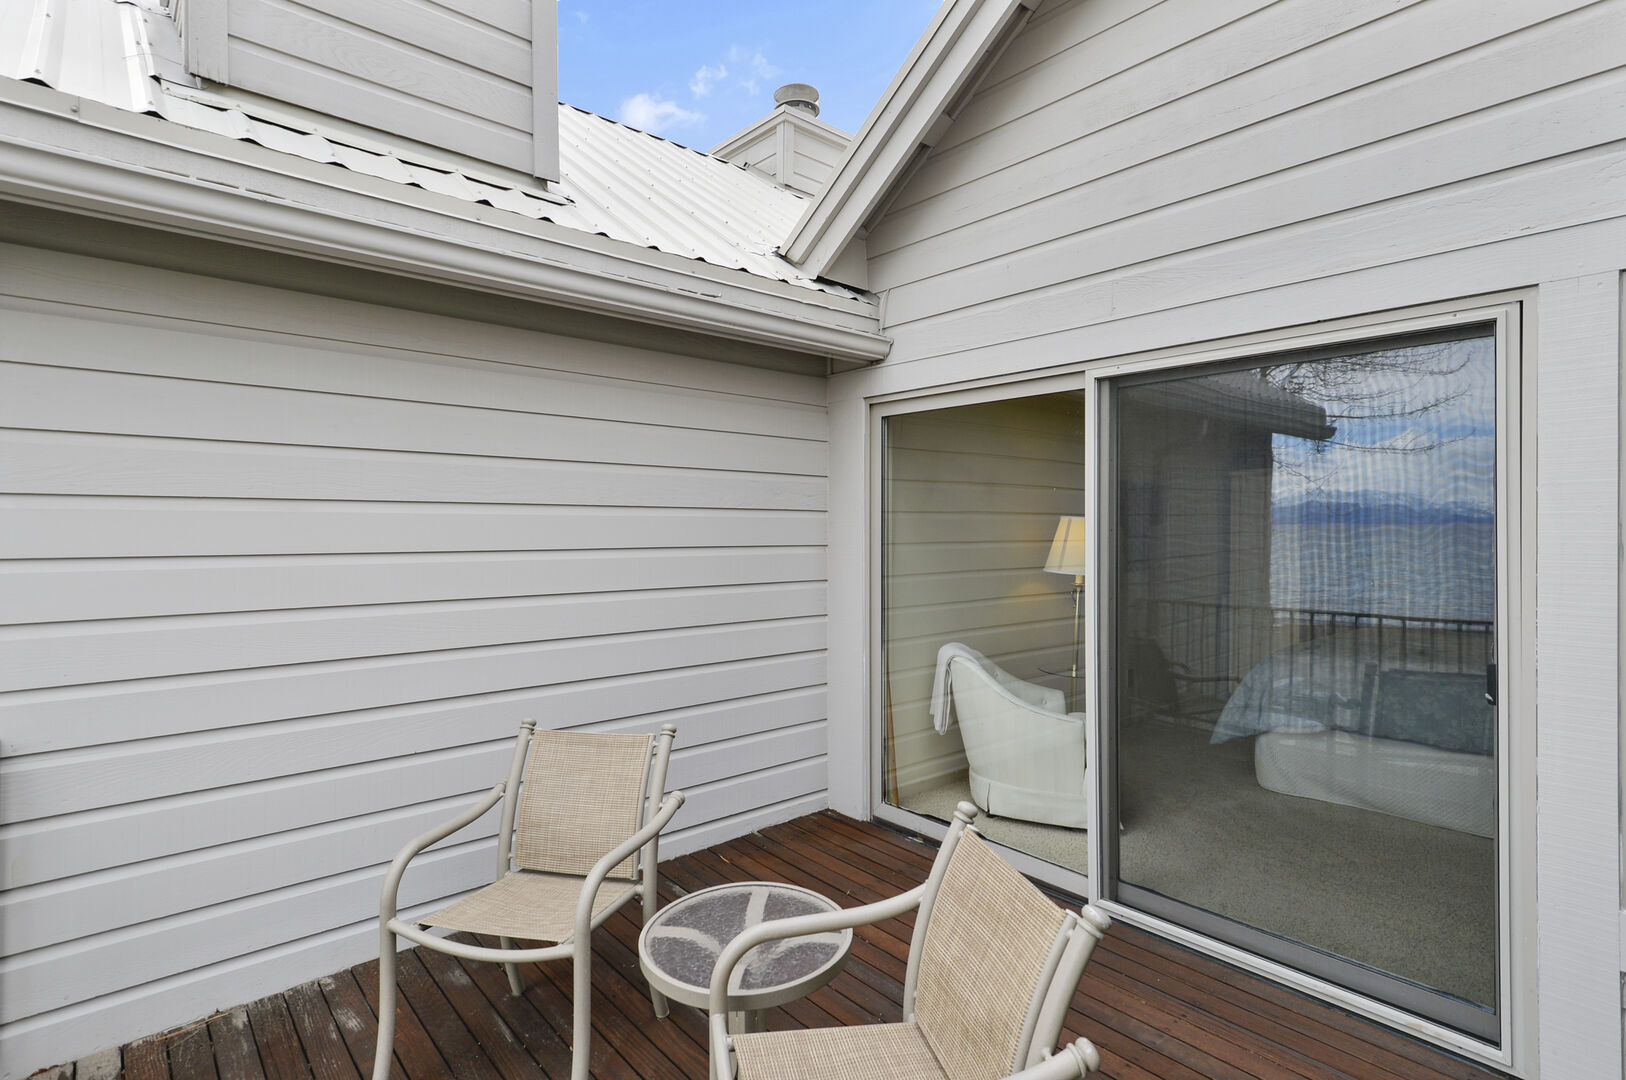 Outdoor Deck, Patio Chairs, Coffee Table, and the Bedroom Sliding Door.